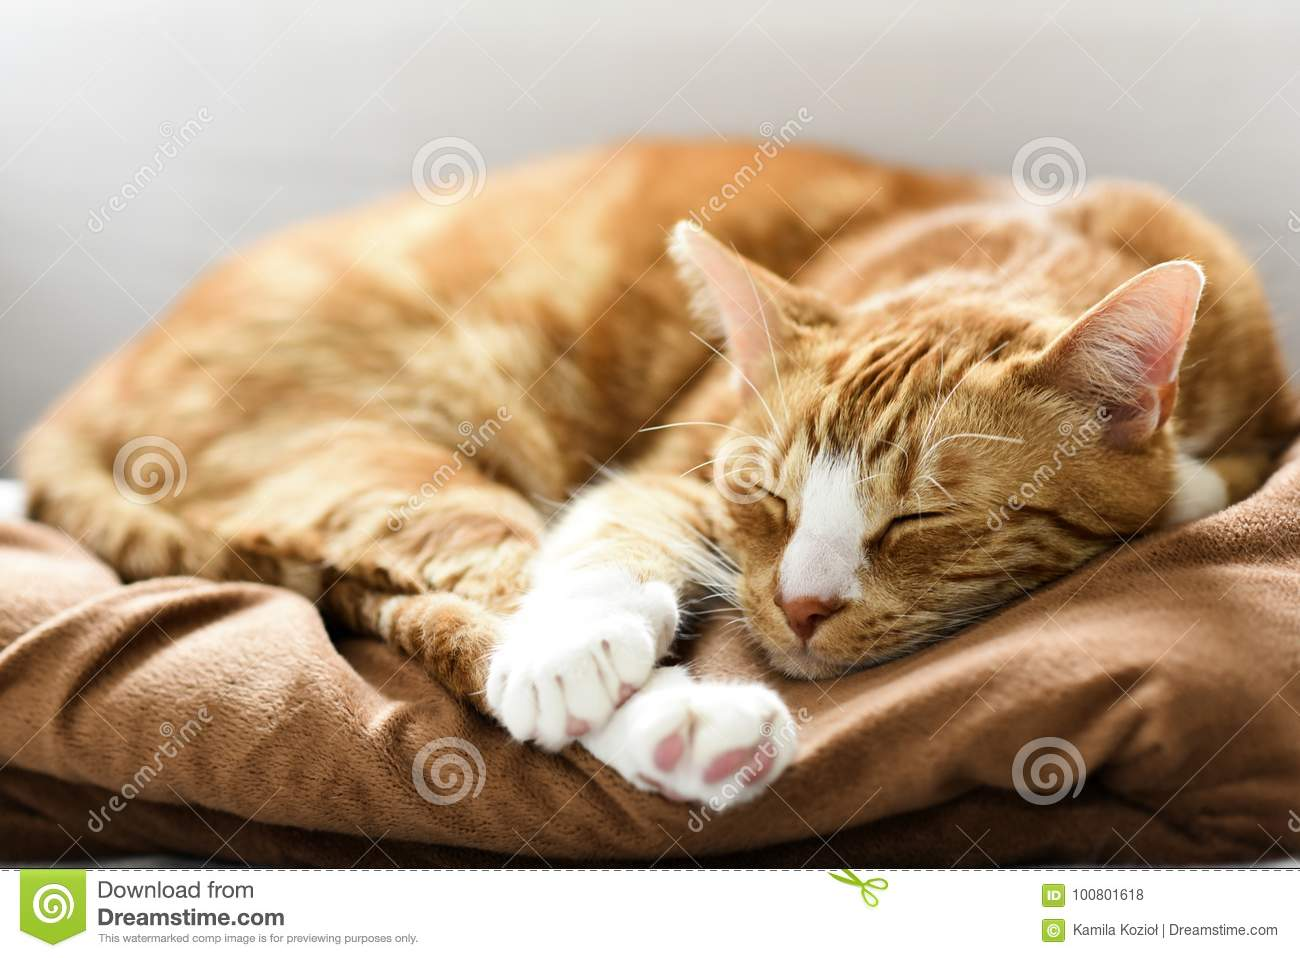 A young cat sleeping on a couch at home, sweet and beautiful.